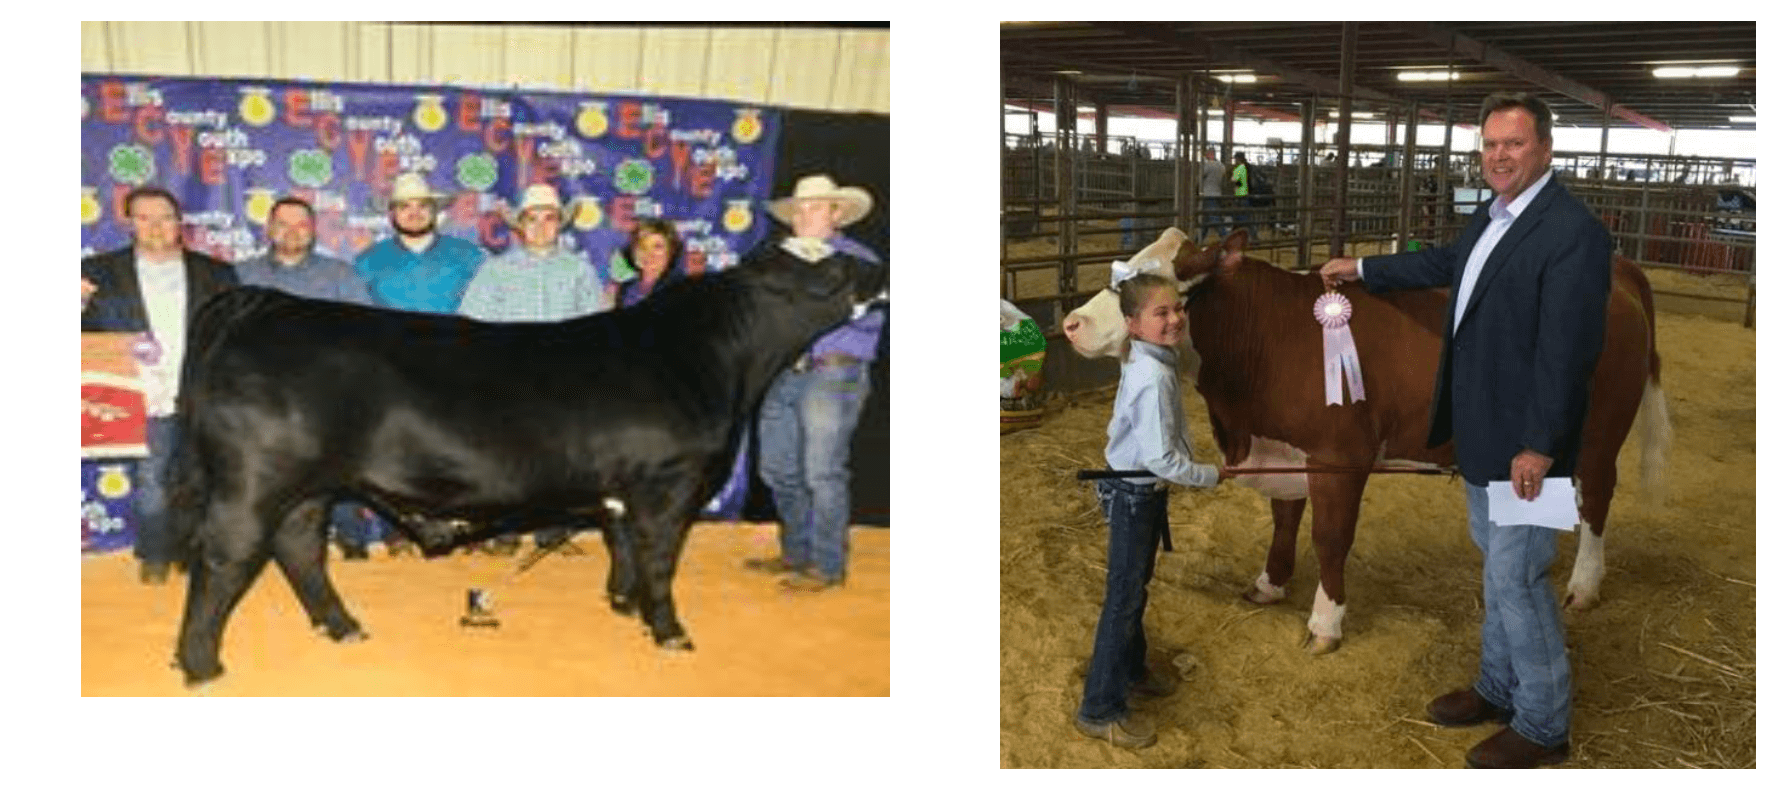 Ellis County Youth Expo